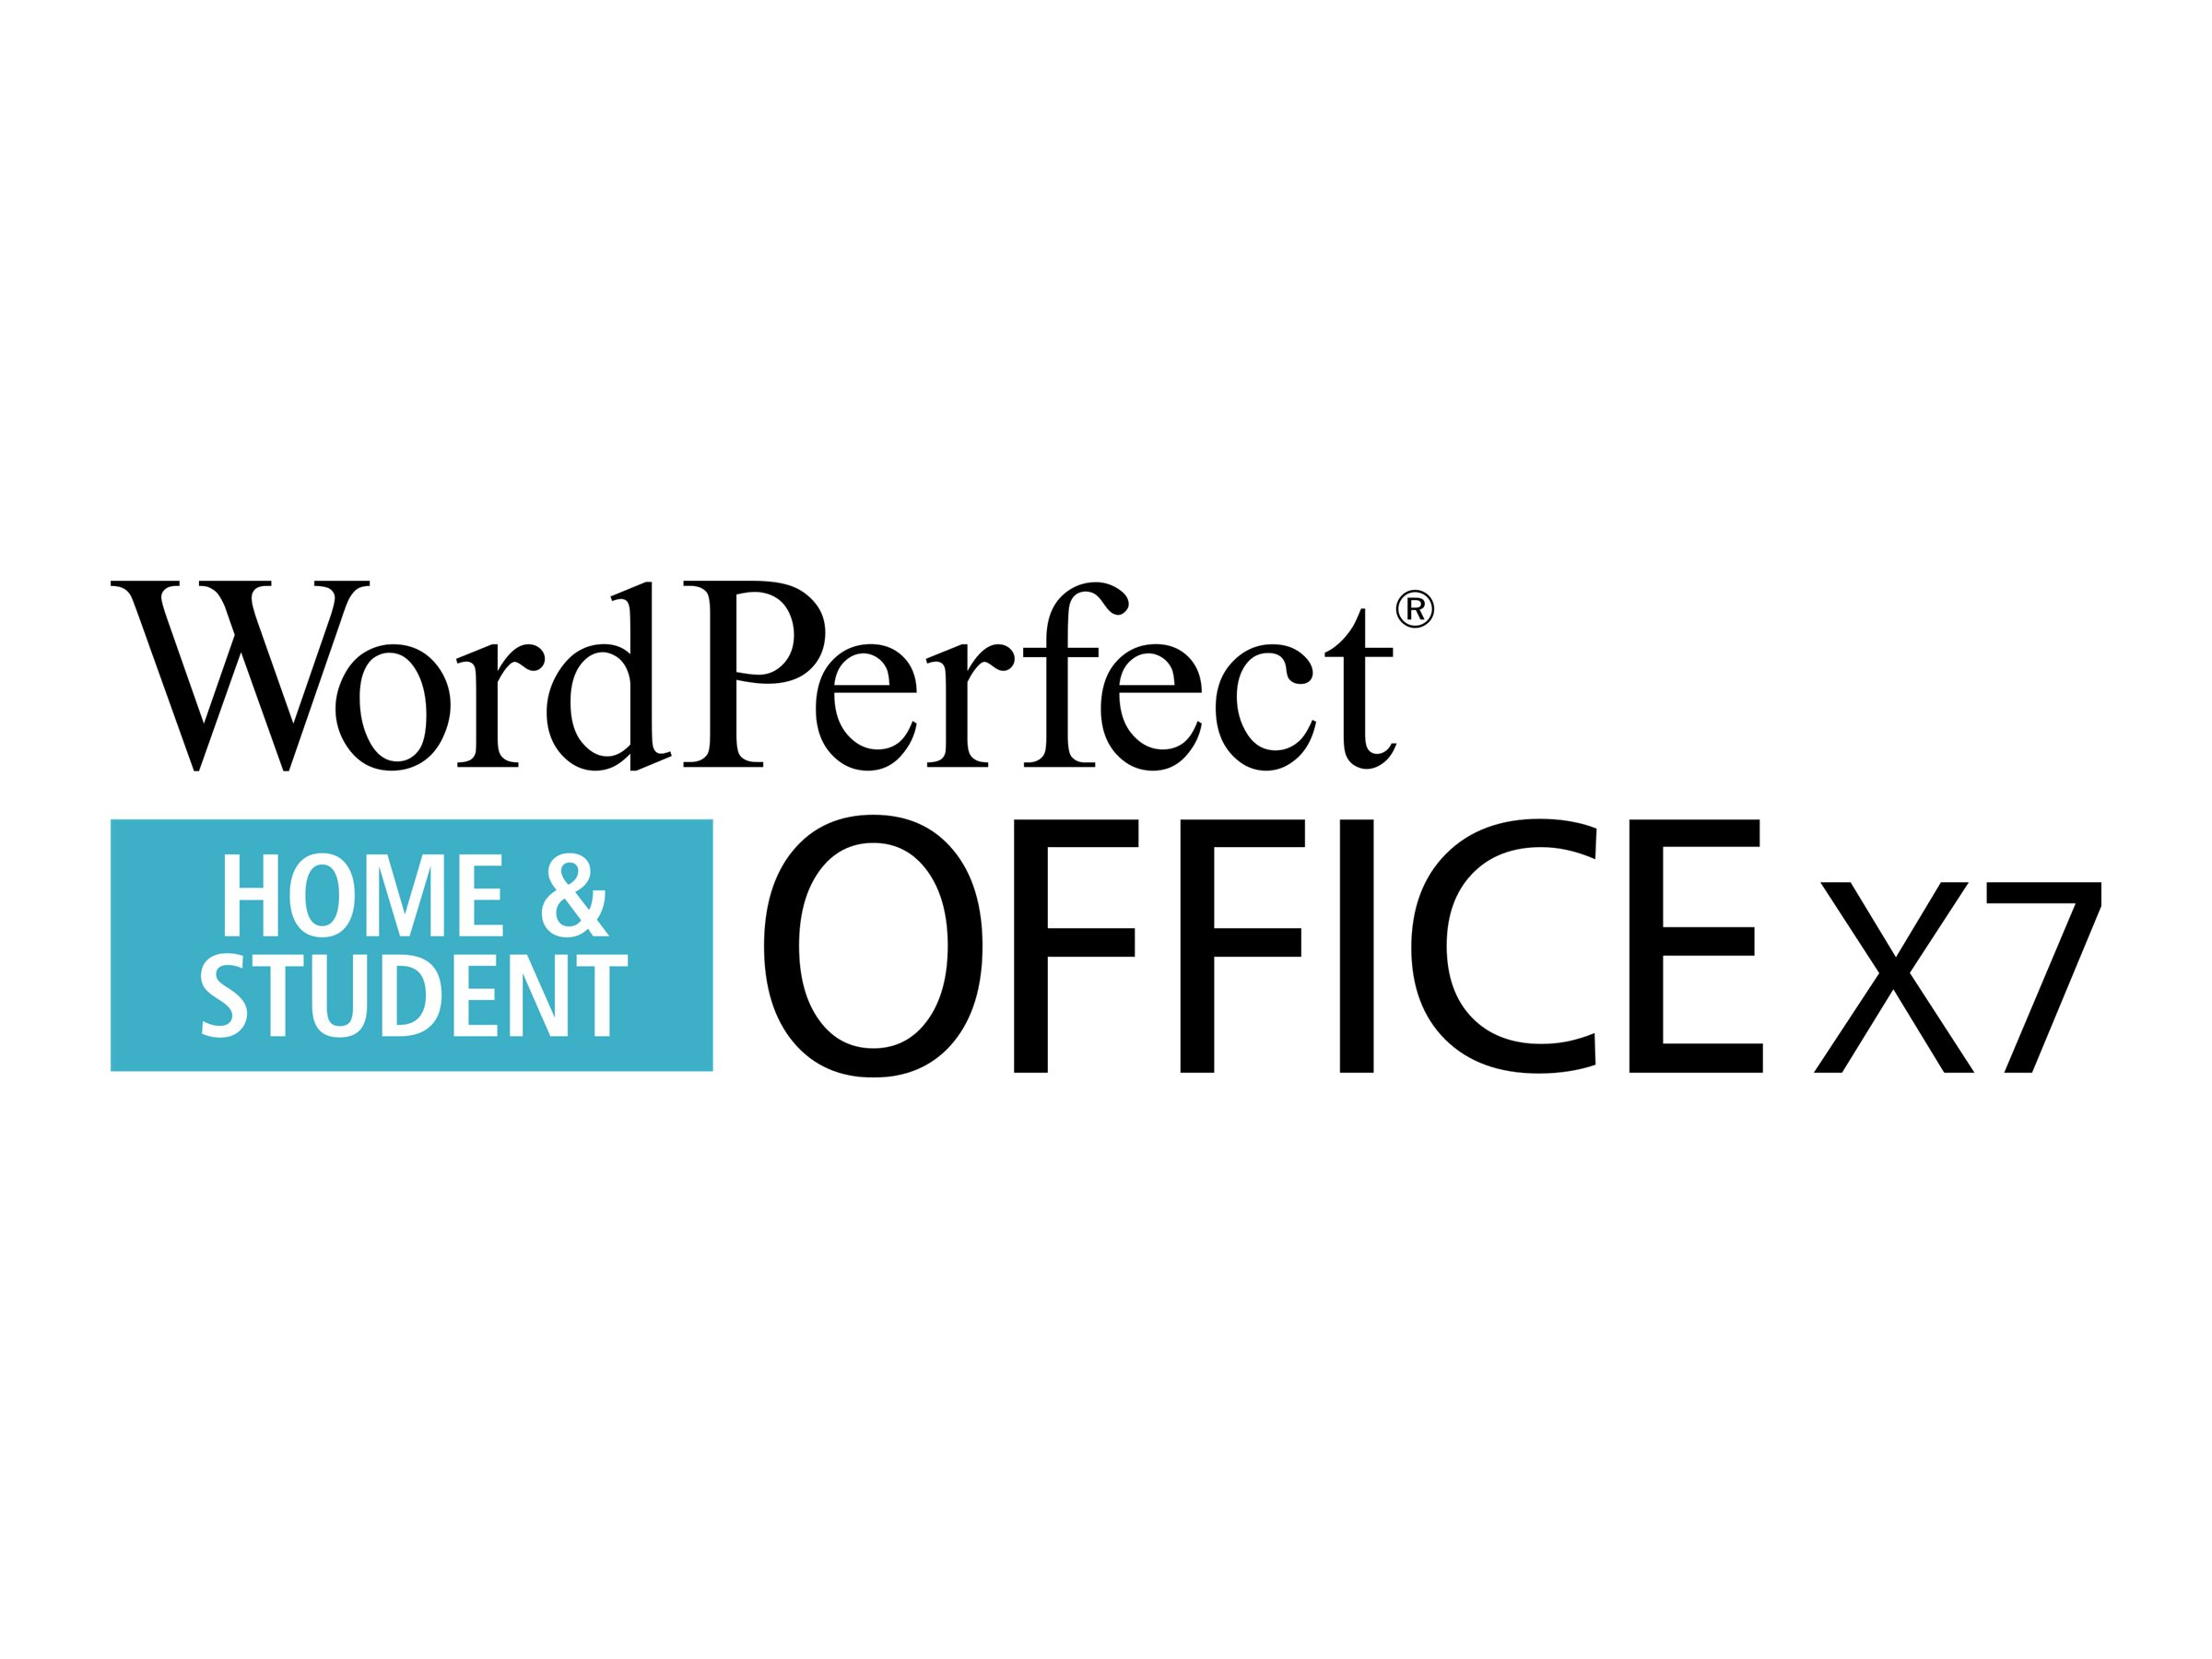 WordPerfect Office X7 Home and Student Edition - License and